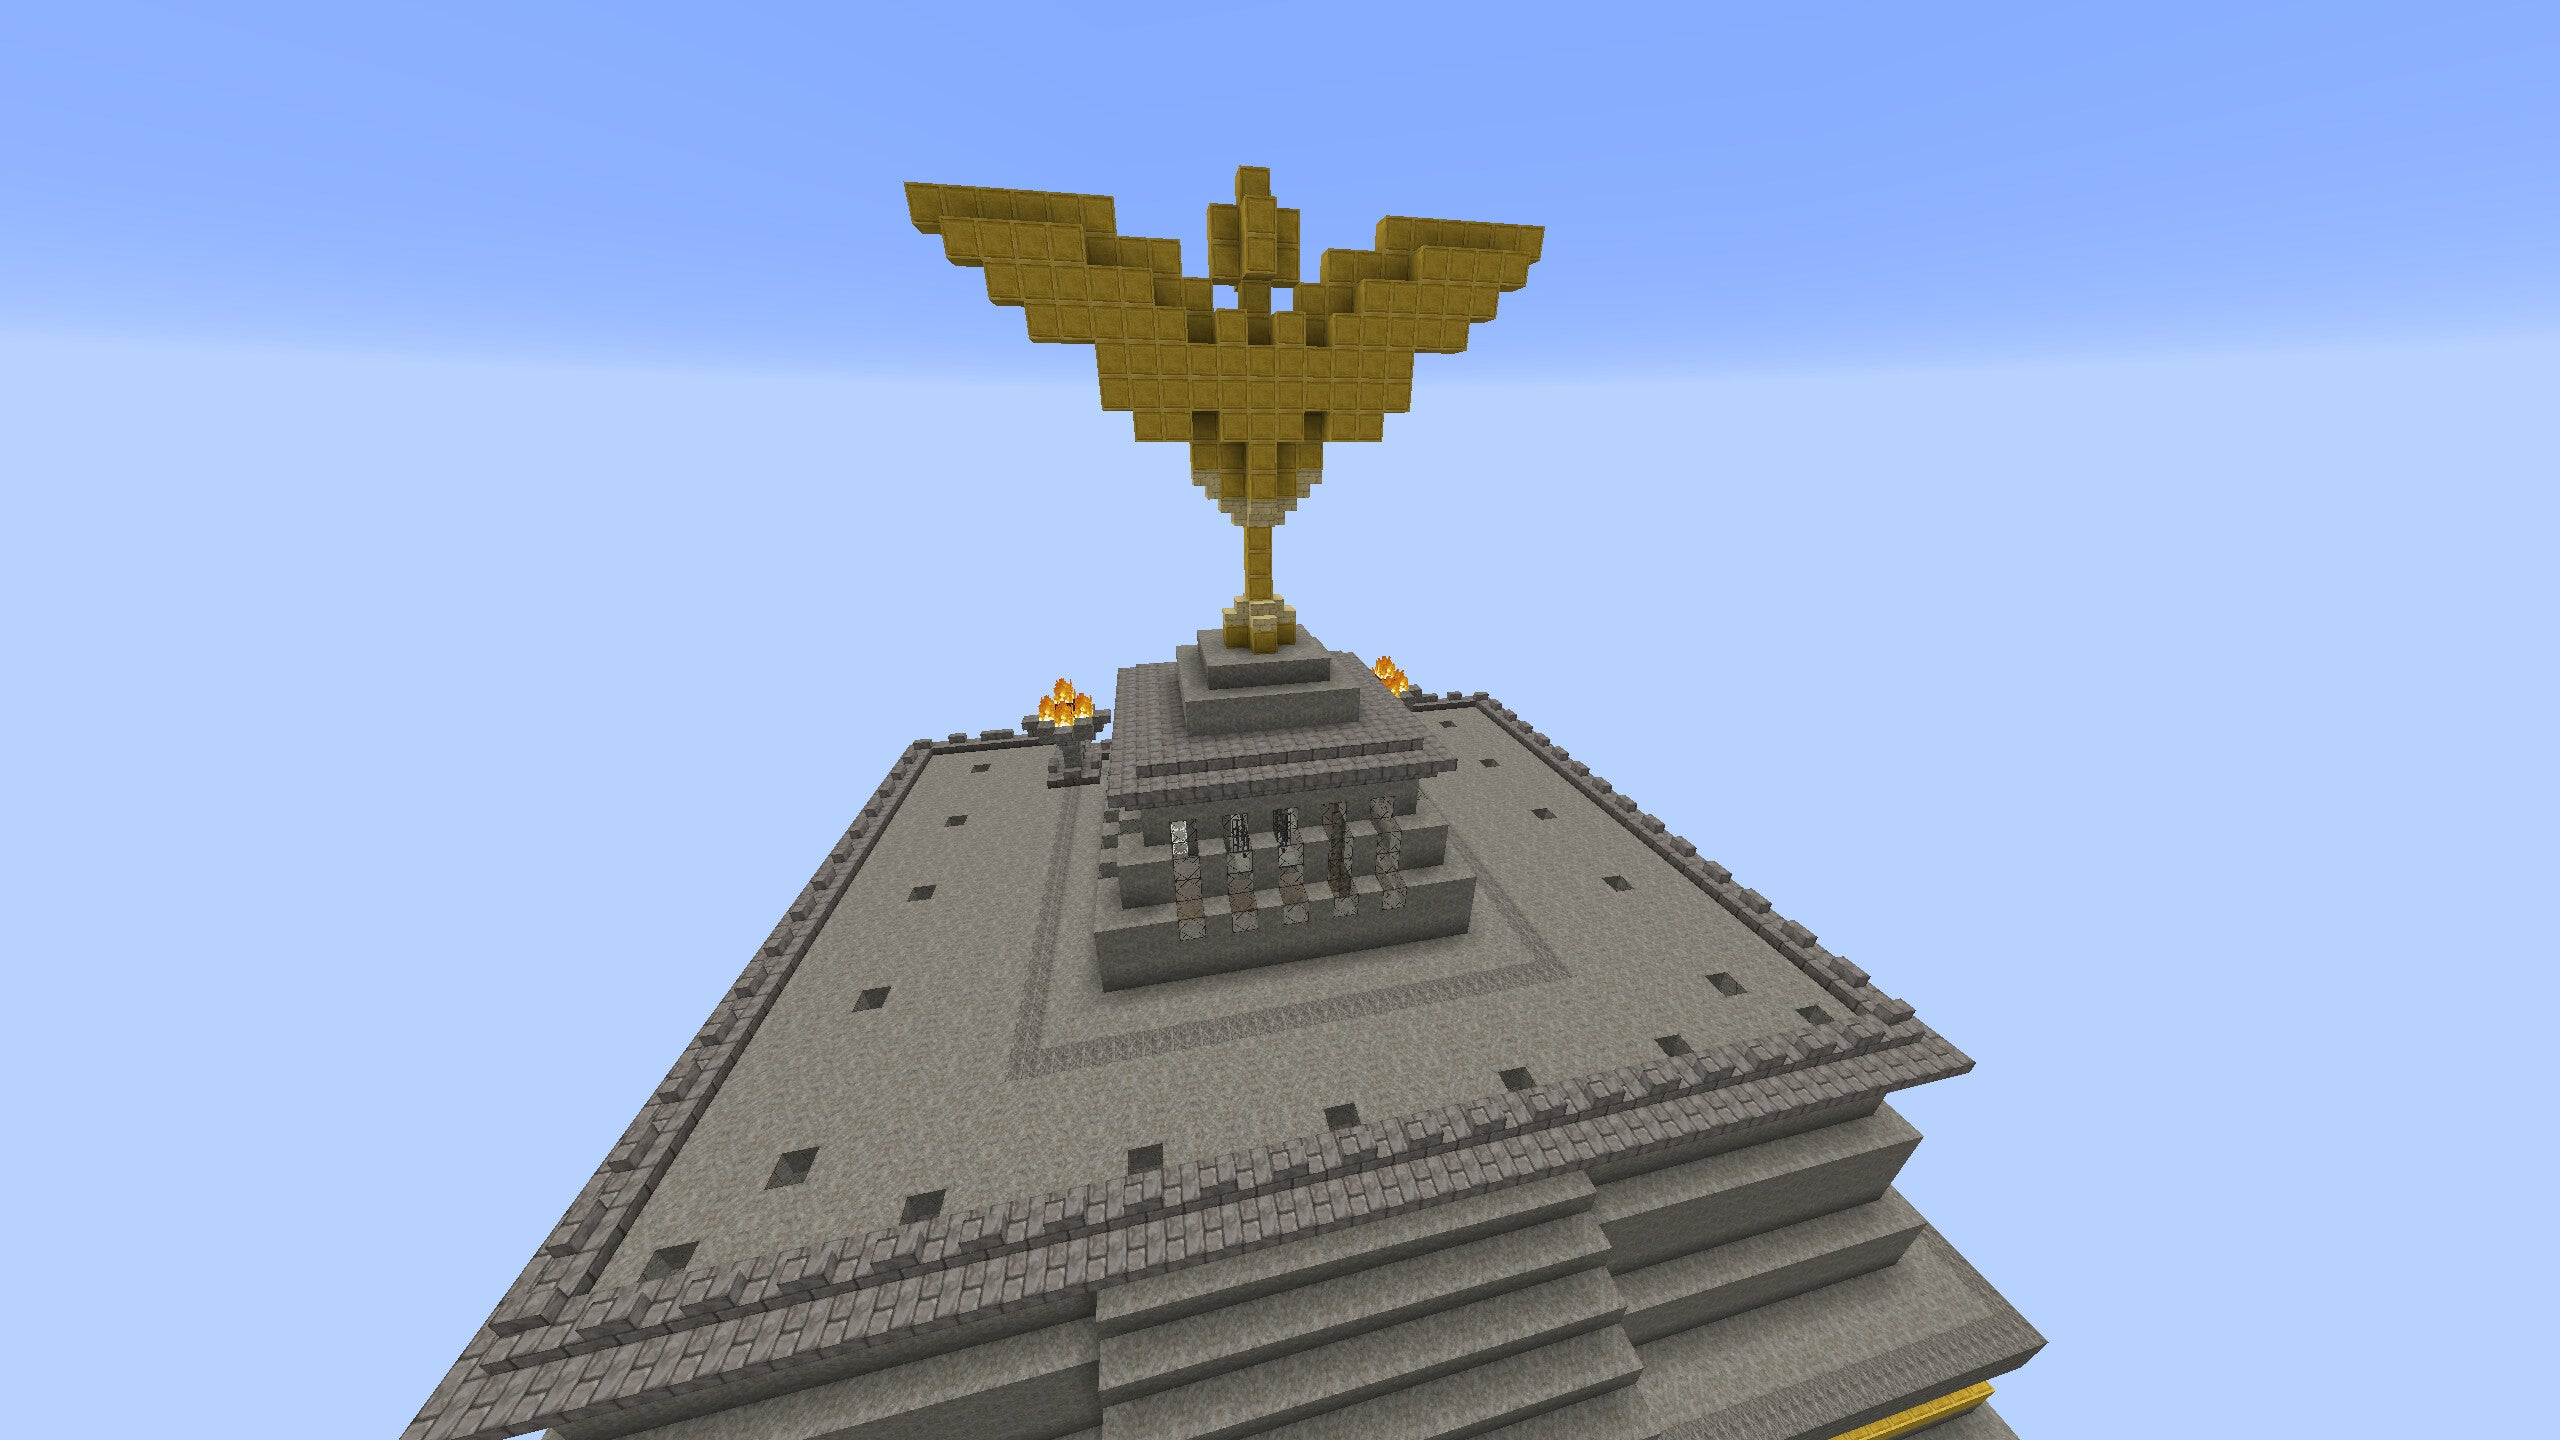 The Great Pyramid from Game of Thrones, Recreated in Minecraft